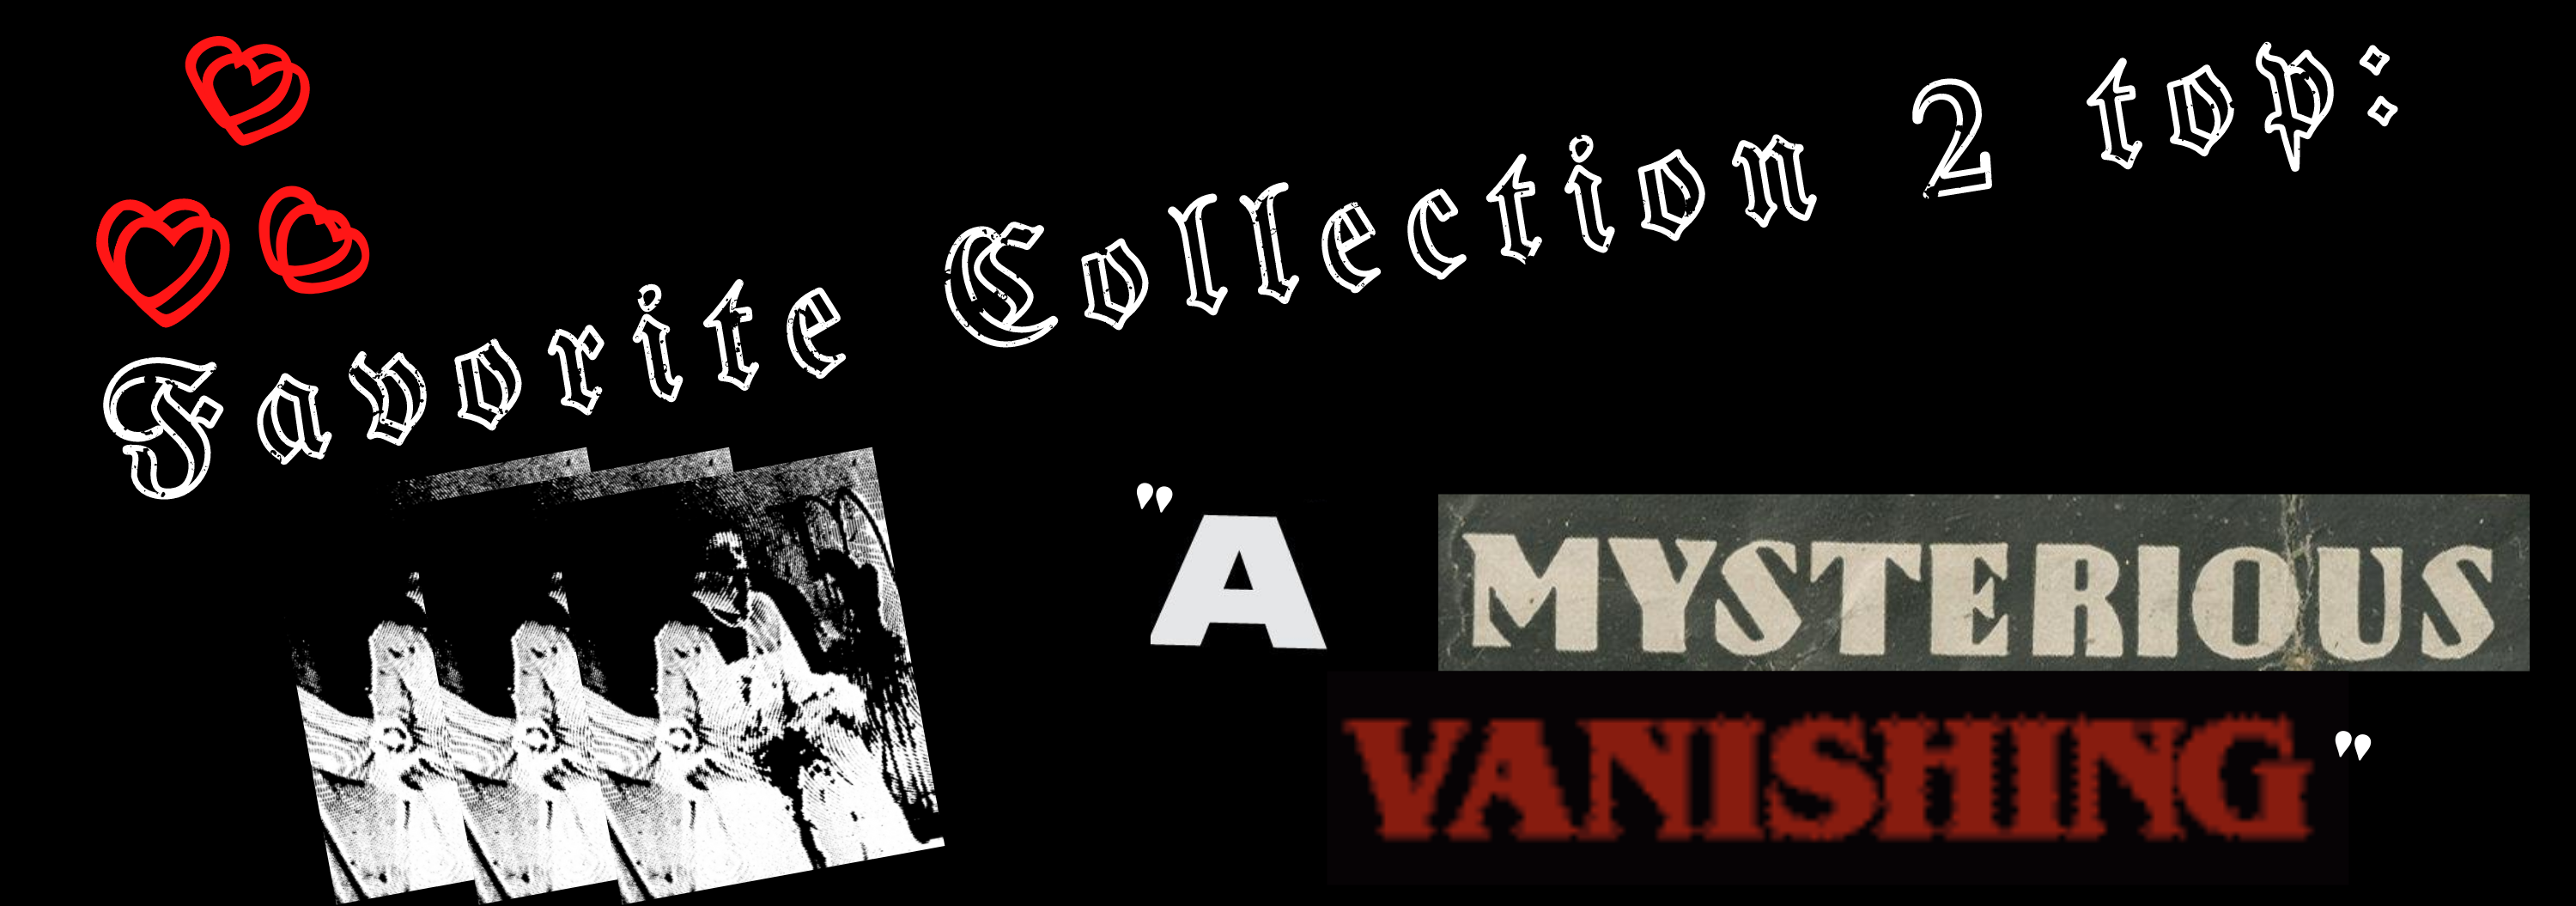 A black, white, and red graphic that says Favorite Collection 2 Top and A Mysterious Vanishing, featuring the graphic found on the A Mysterious Vanishing top.